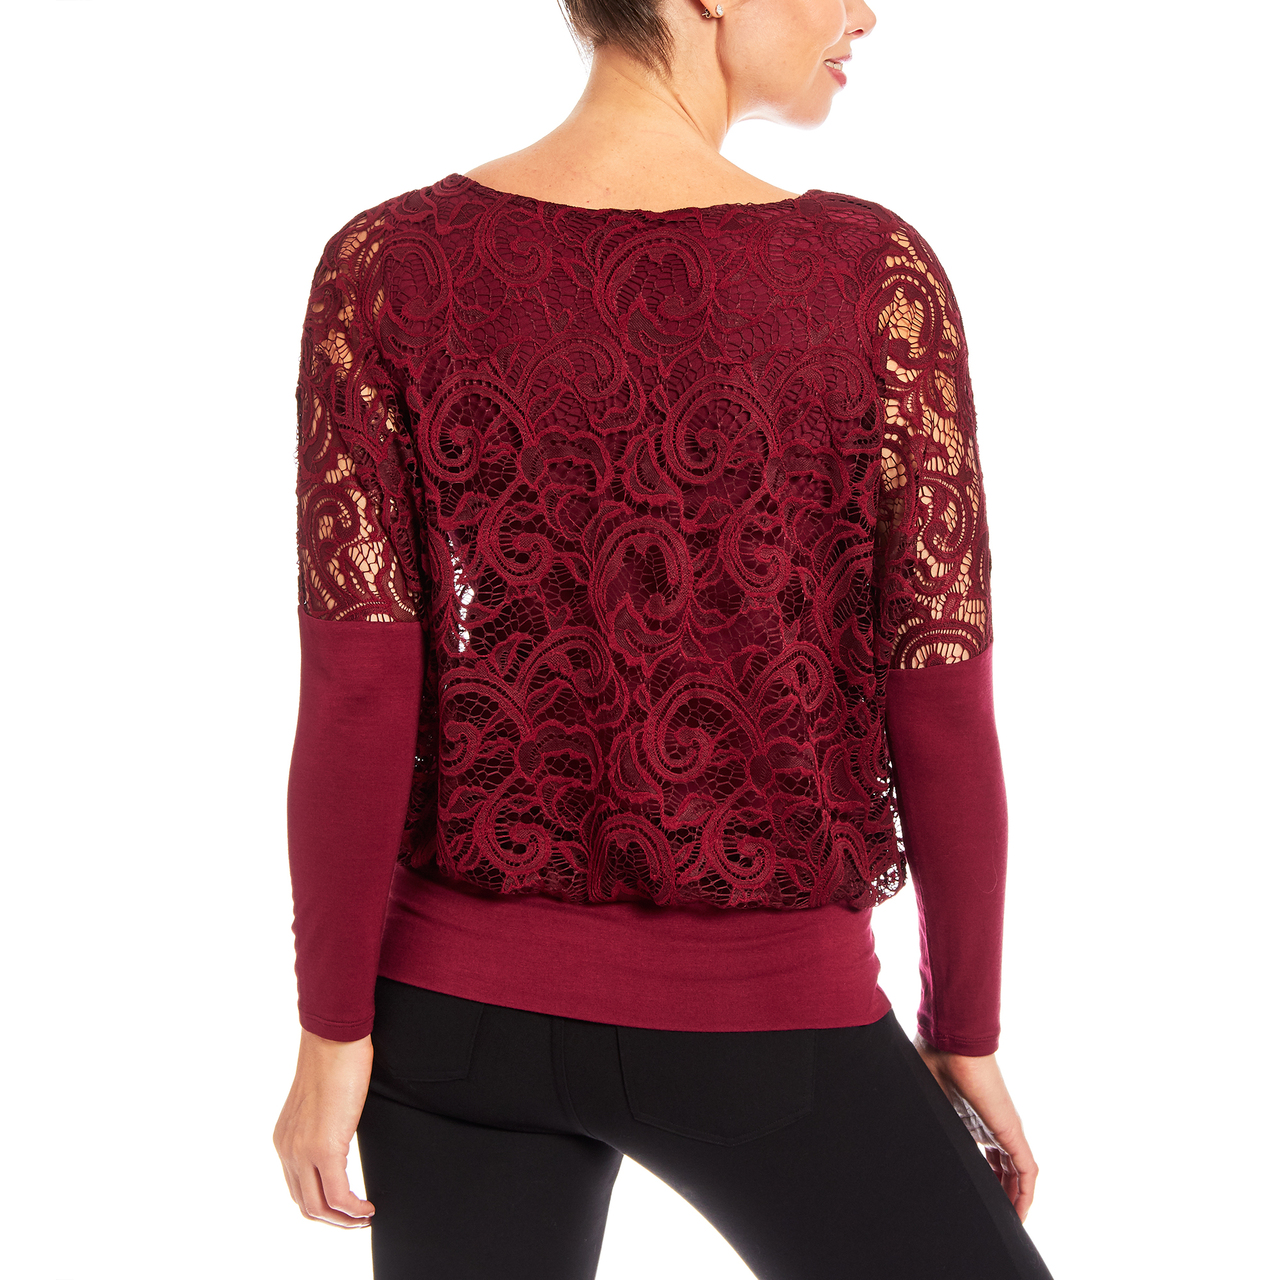 Dolman Long Sleeve Lace Top with Banded Knit Bottom In Wine